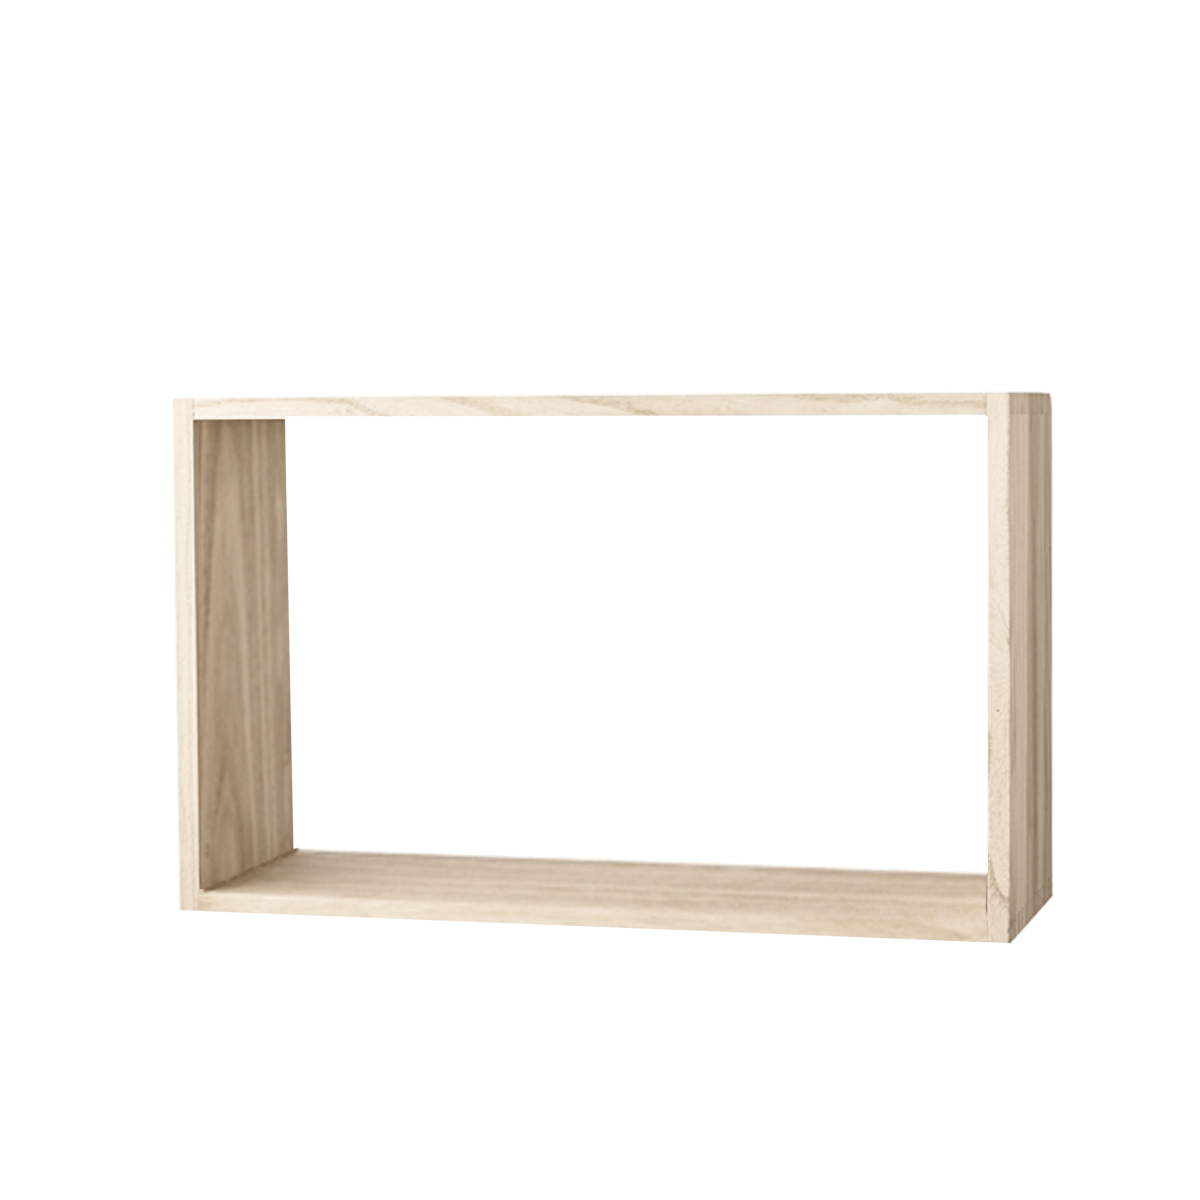 Etag re murale en bois naturel 45 cm de large for Etagere 50 cm de large